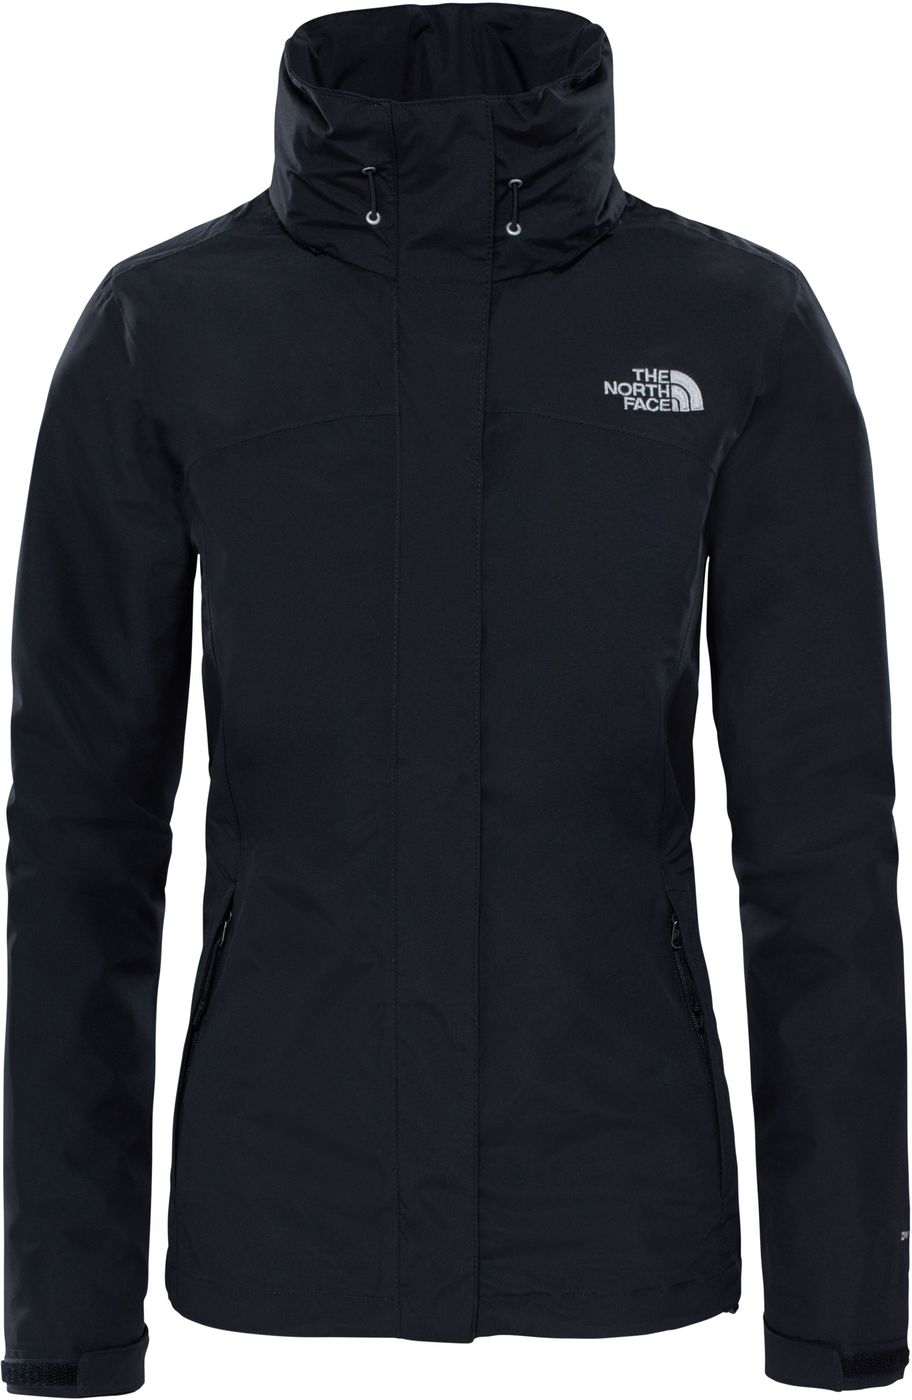 the north face tnf sangro jacke damen wasserdichte trekking outdoor xs xxl neu ebay. Black Bedroom Furniture Sets. Home Design Ideas